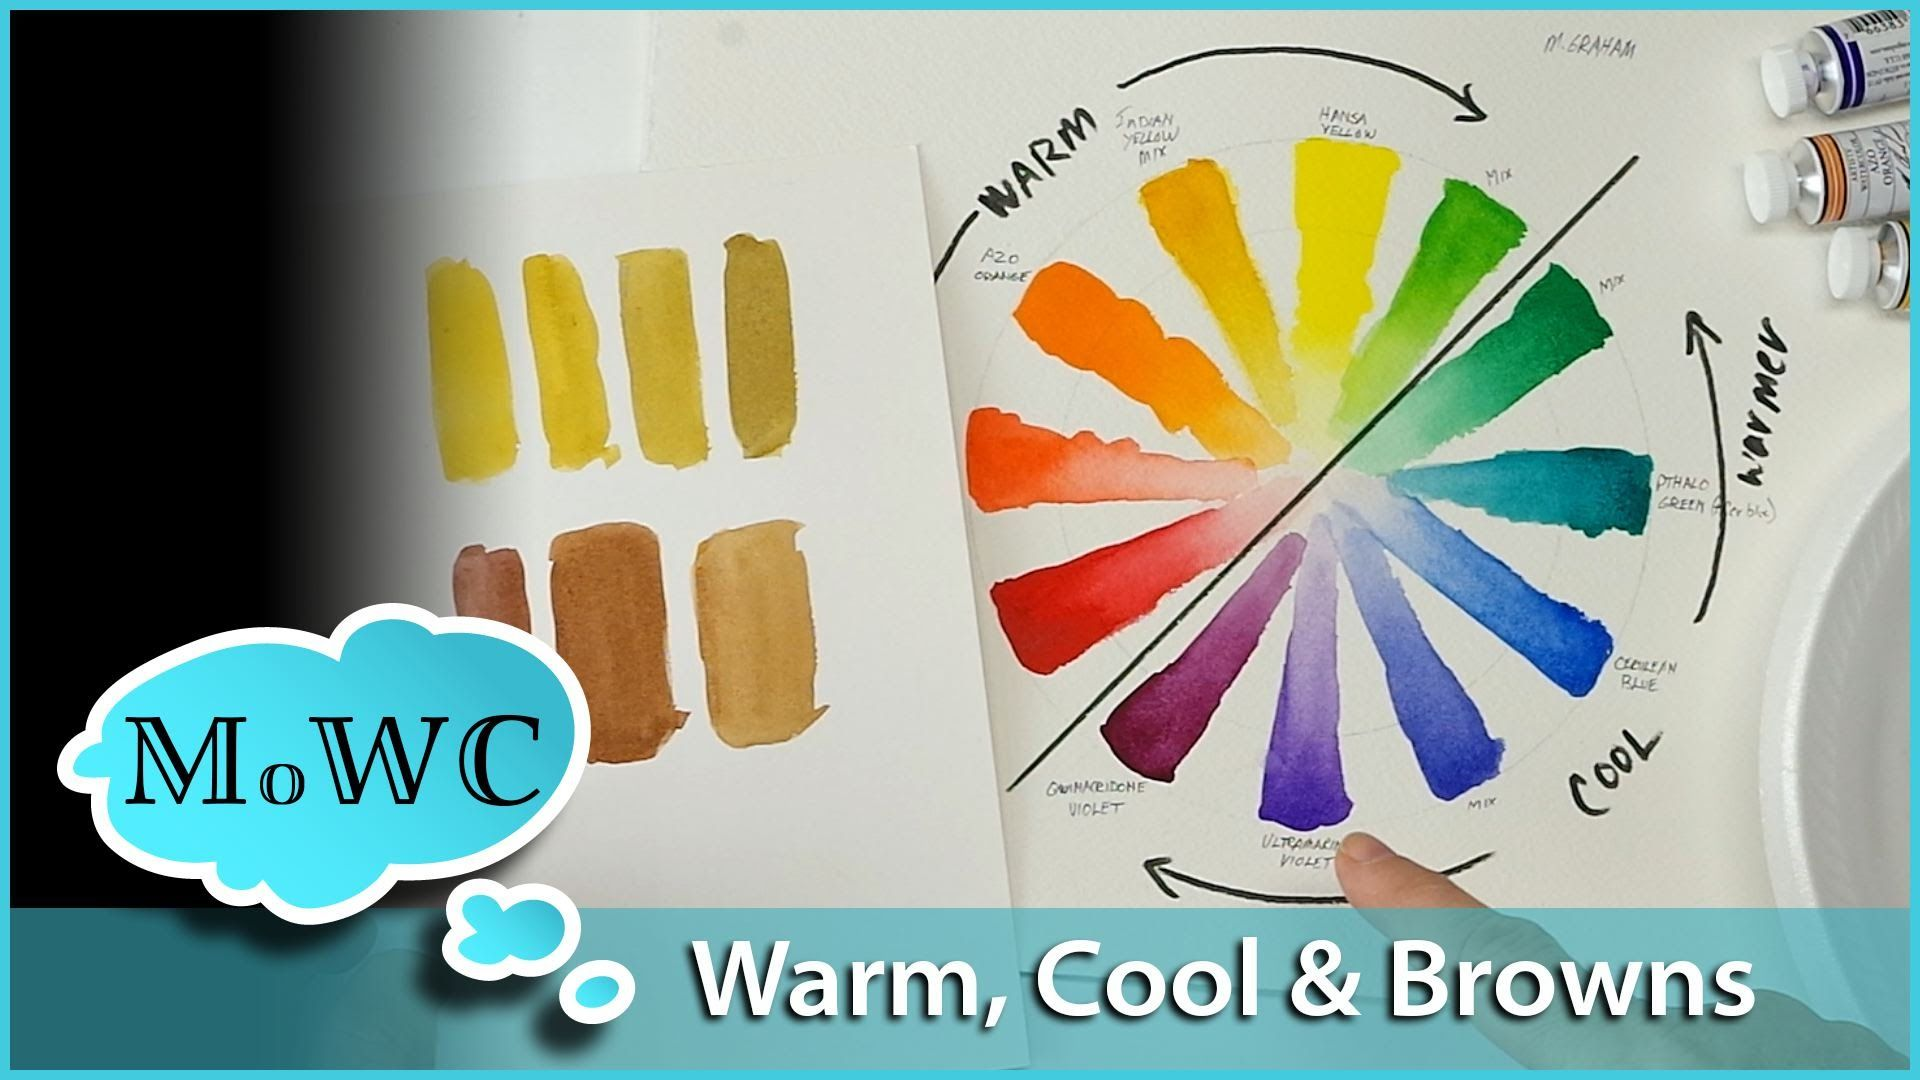 Warm Vs Cool Colors And Mixing Browns In Watercolor Painting